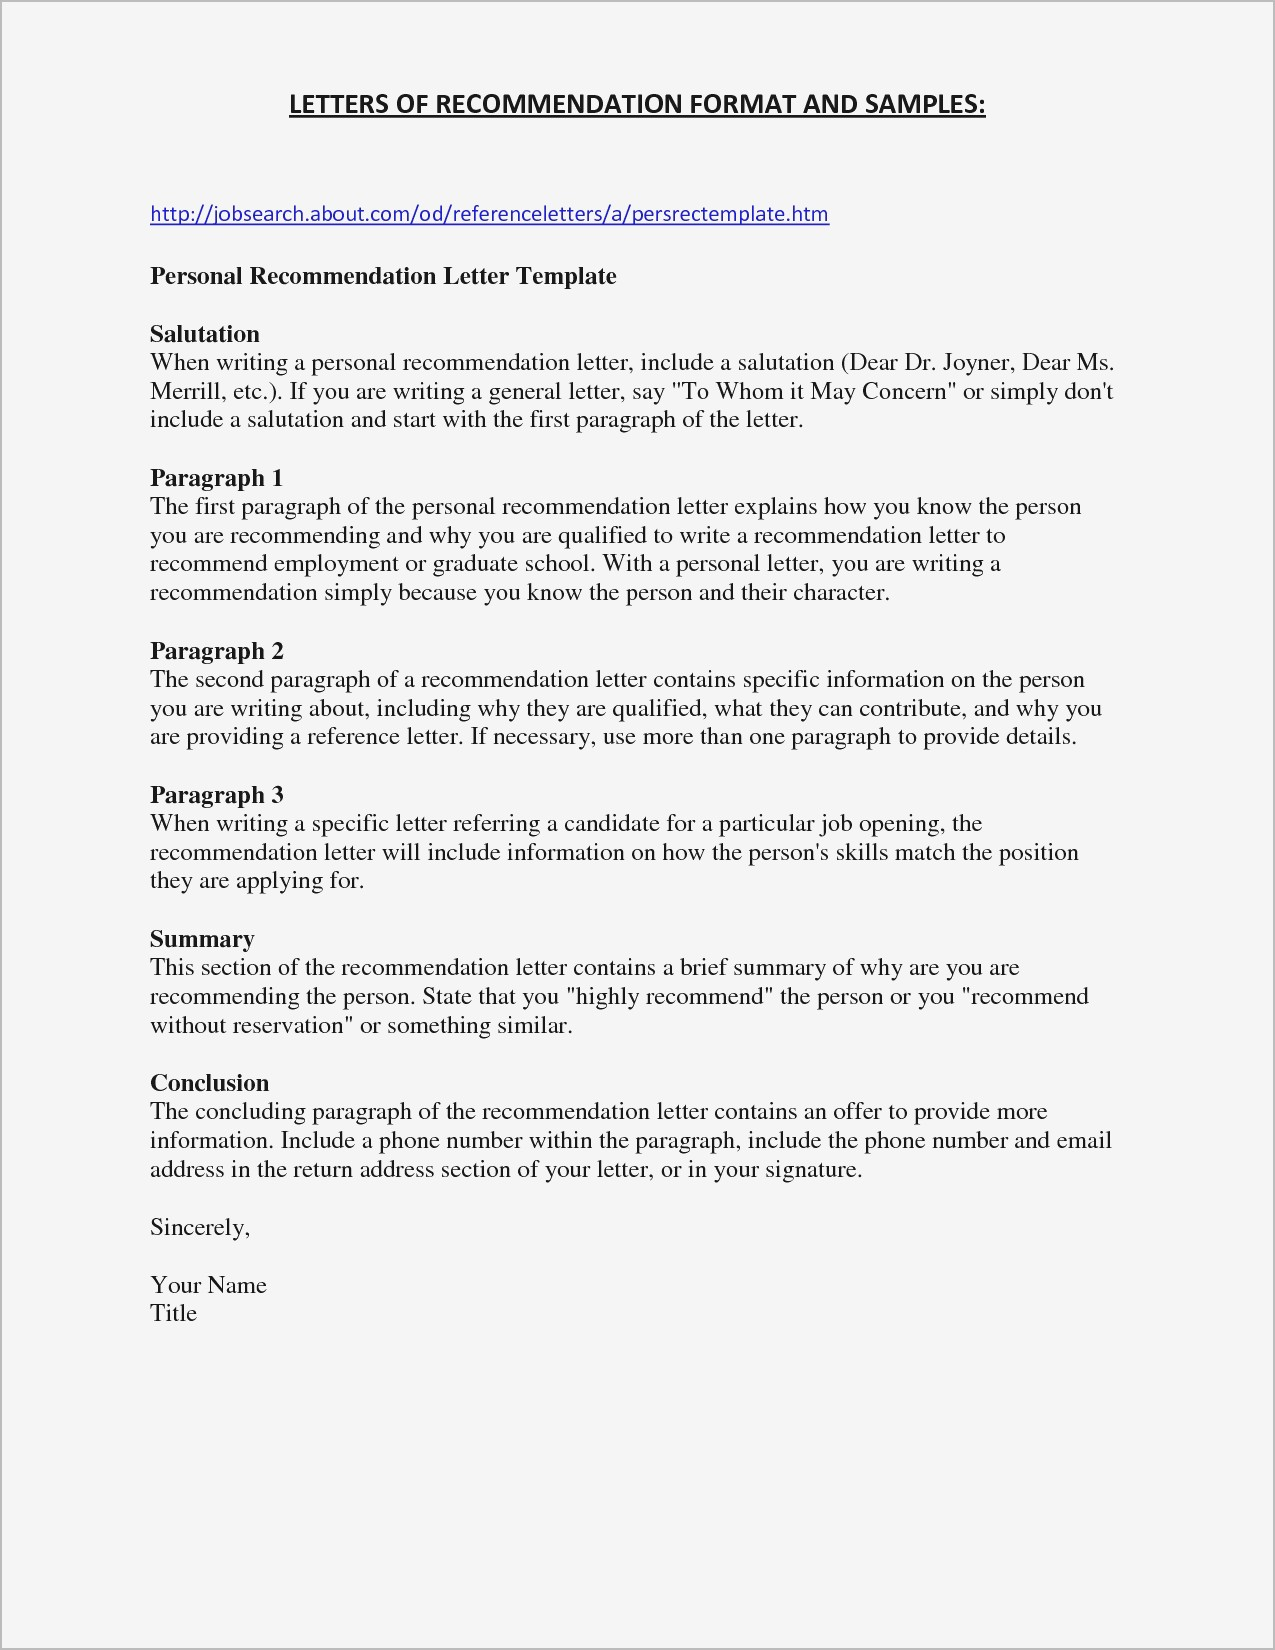 Reference Letter Template for Student - Letter Re Mendation Template for Student Samples